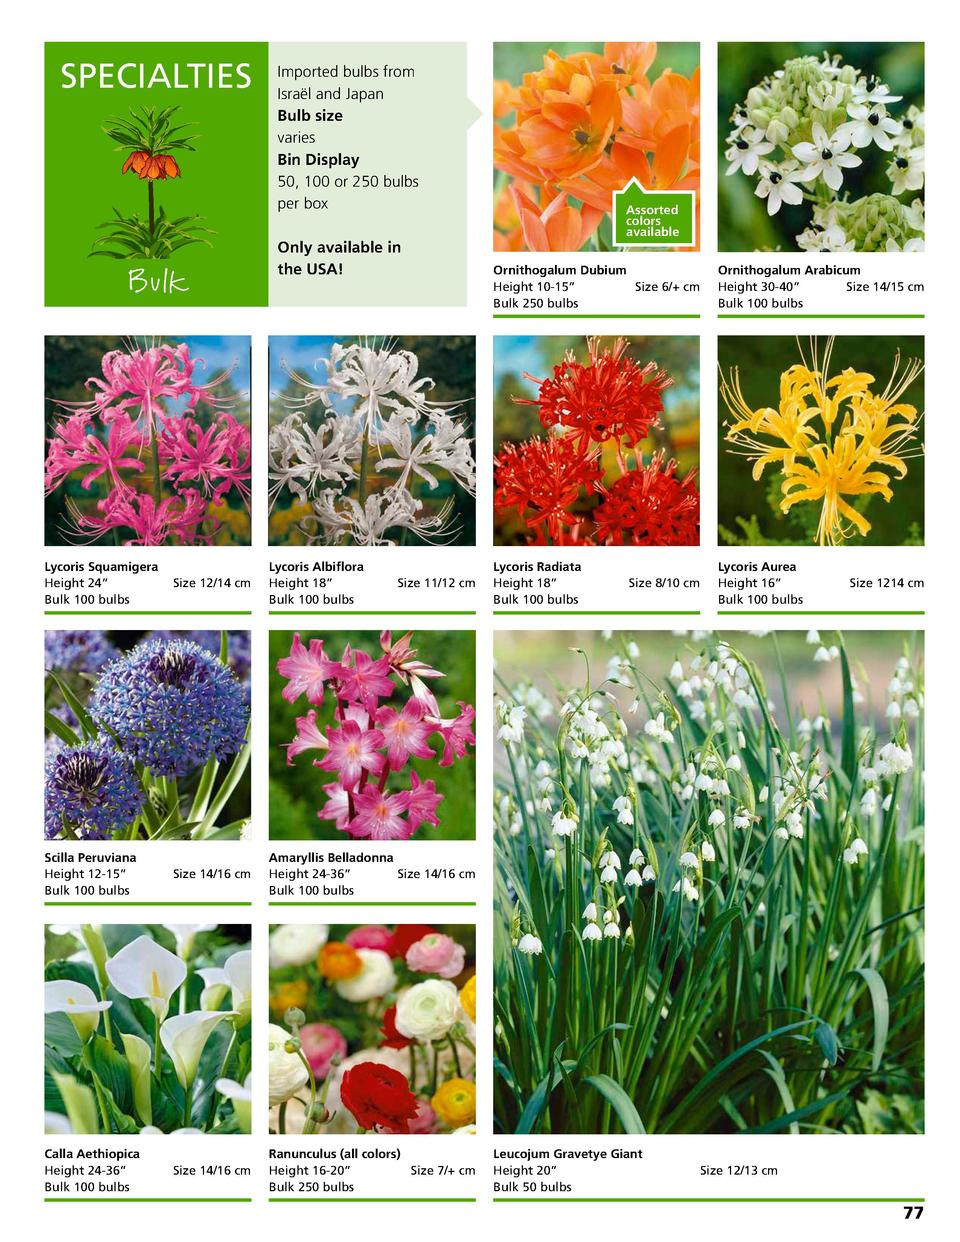 SPECIALTIES  Bulk  Imported bulbs from Isra  l and Japan Bulb size varies Bin Display 50, 100 or 250 bulbs per box Only av...